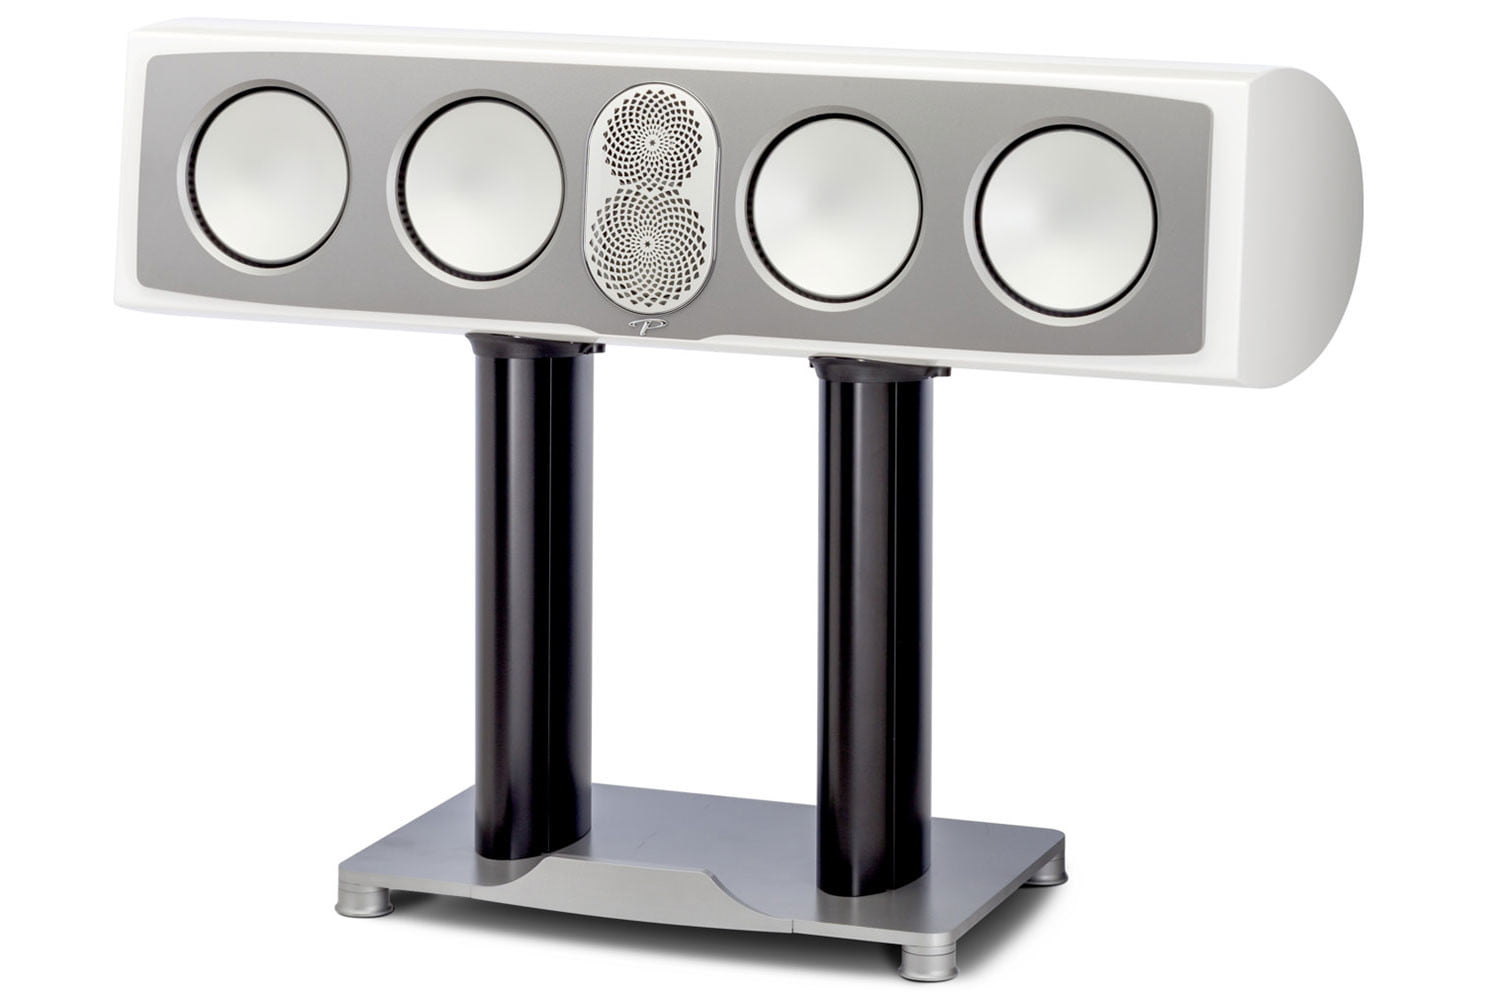 paradigm pw soundplay sound bars persona by speakers announced 2